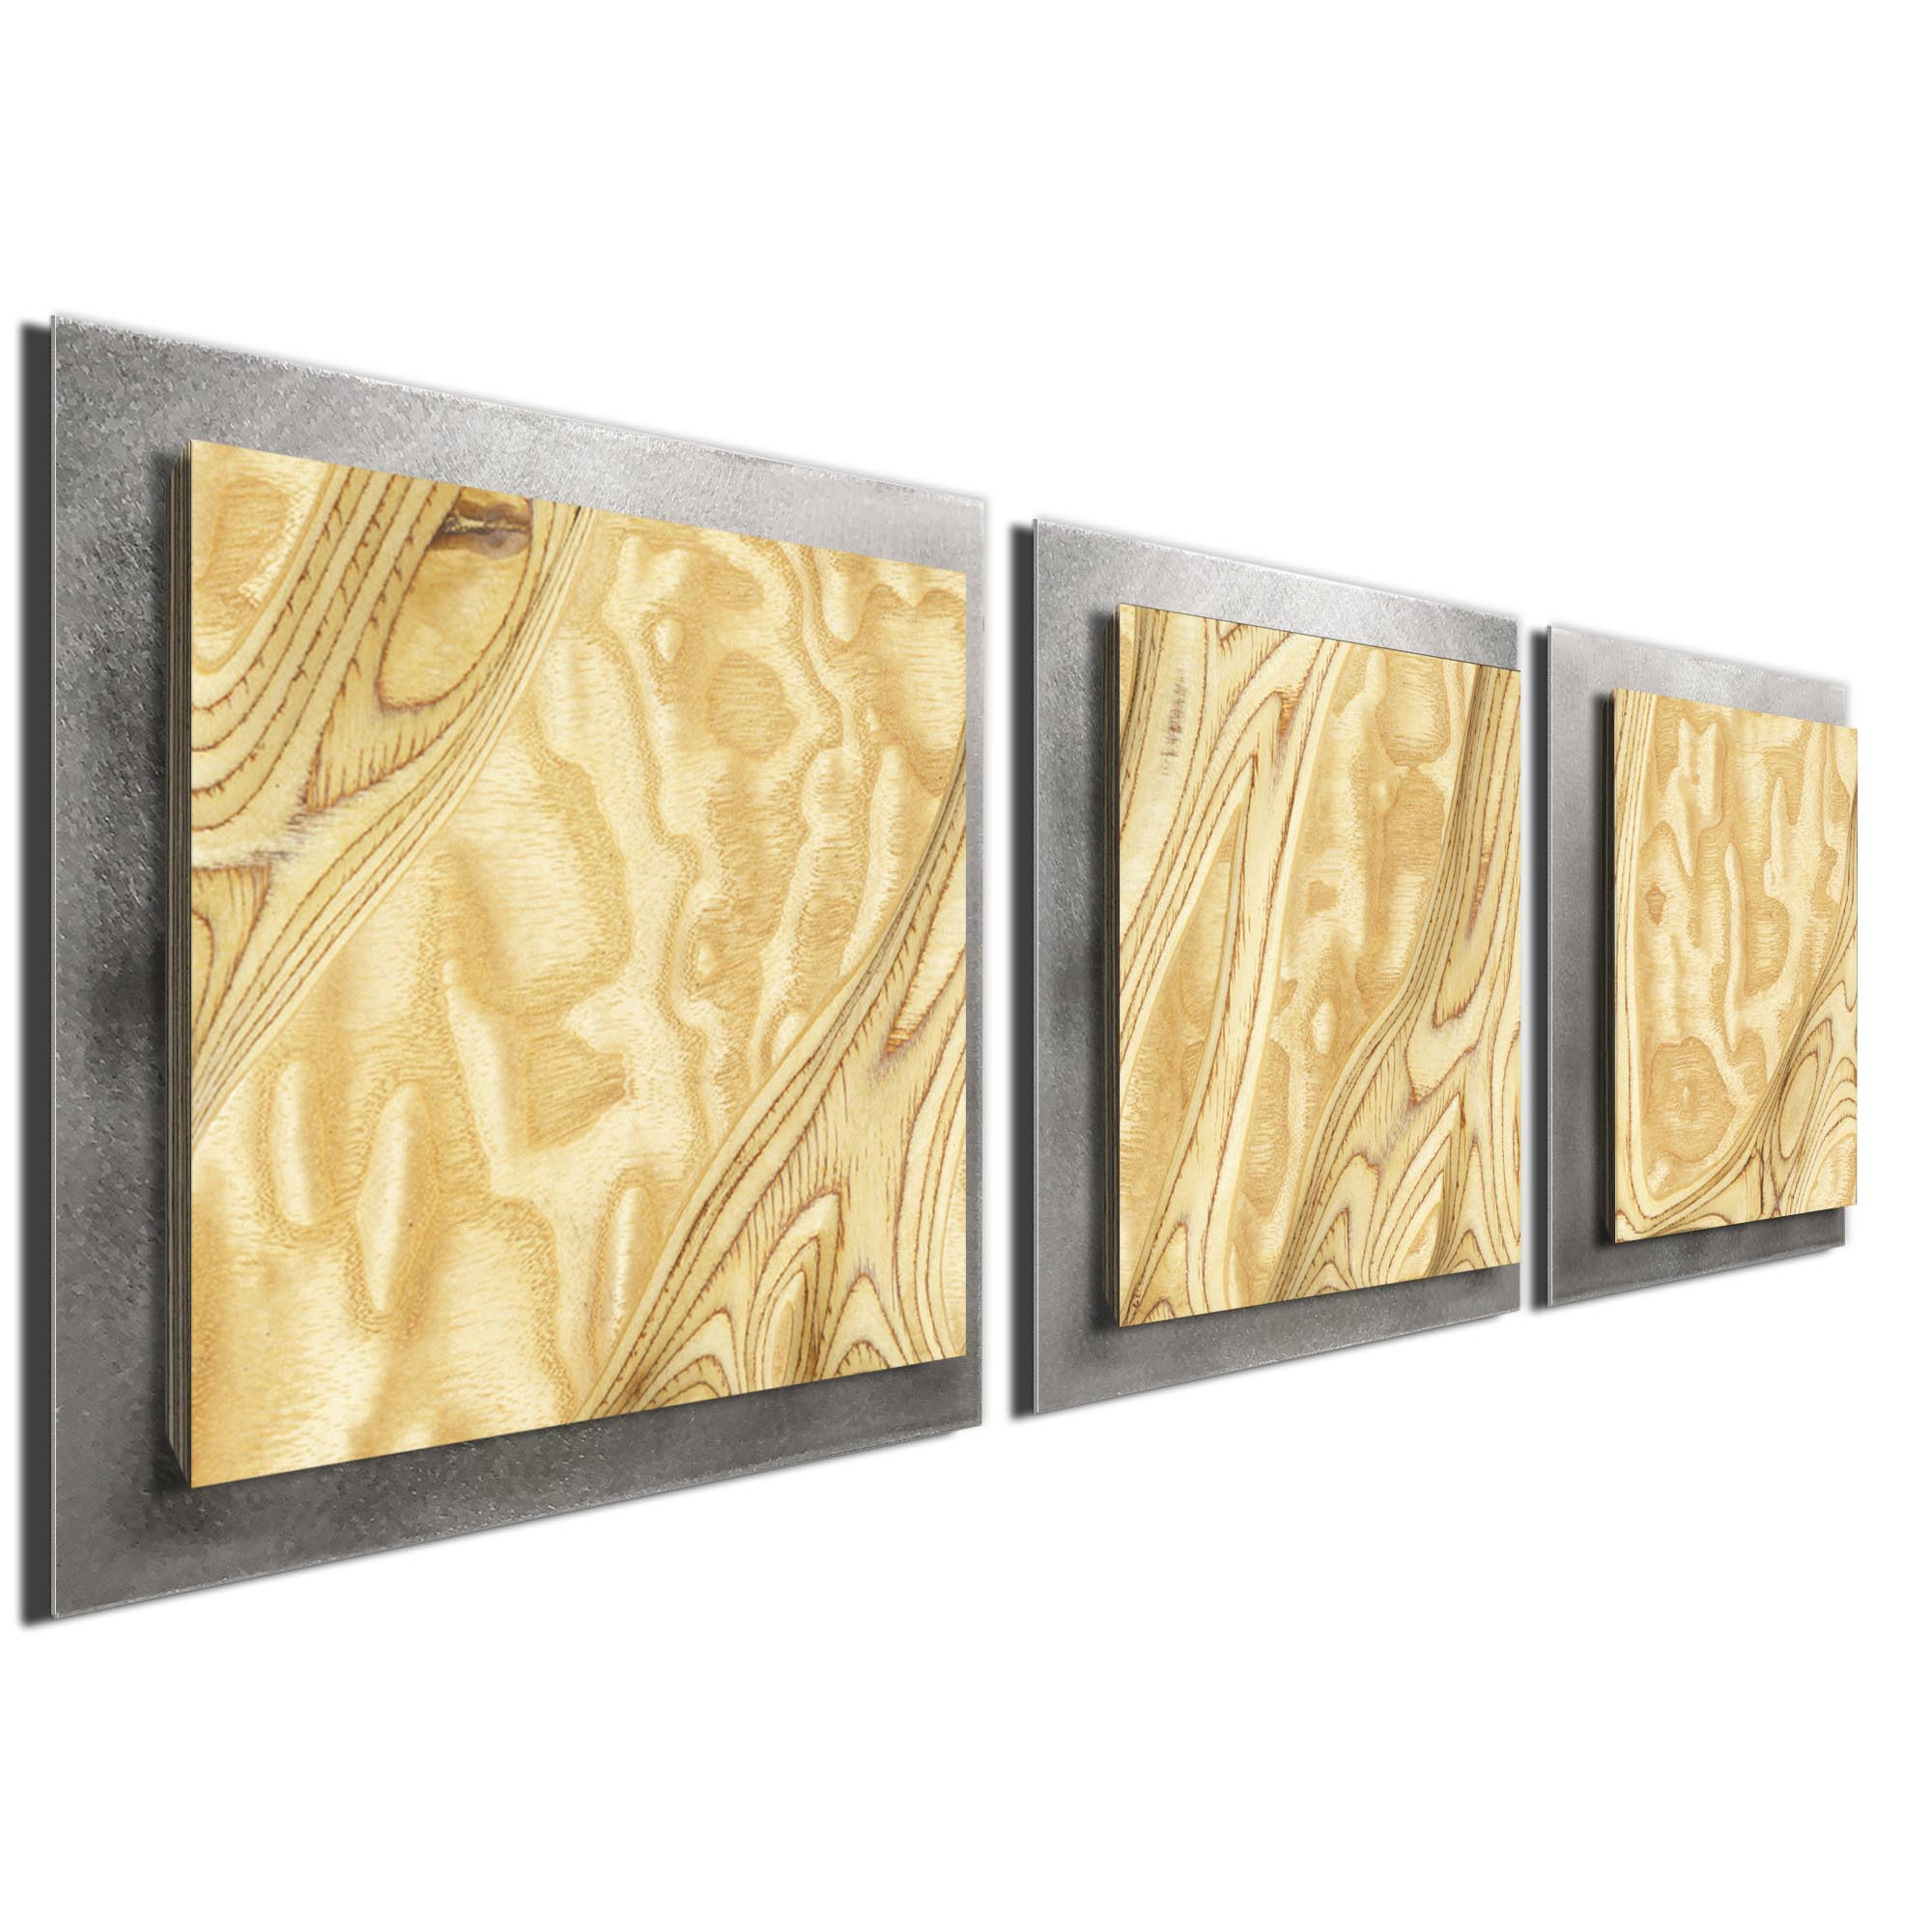 Natural Burl Essence Silver by Jackson Wright Rustic Modern Style Wood Wall Art - Image 2